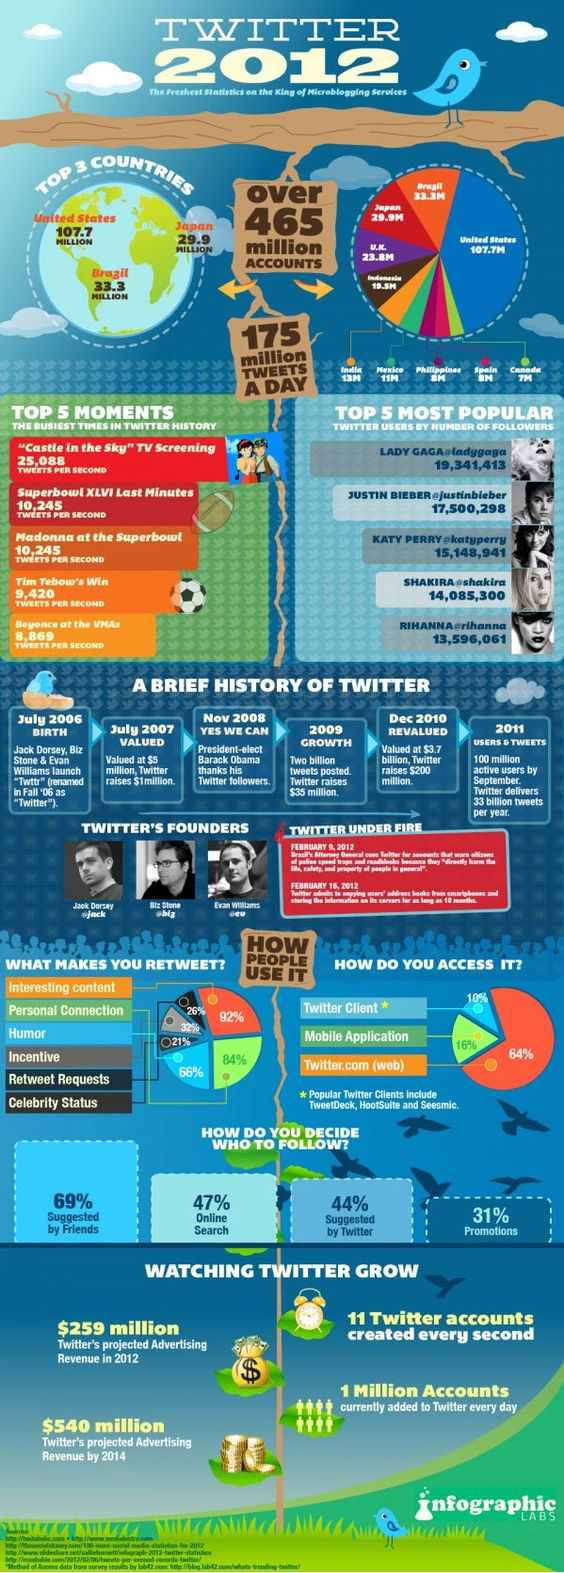 48 Significant Social Media Facts, Figures and Statistics Plus 7 Infographics